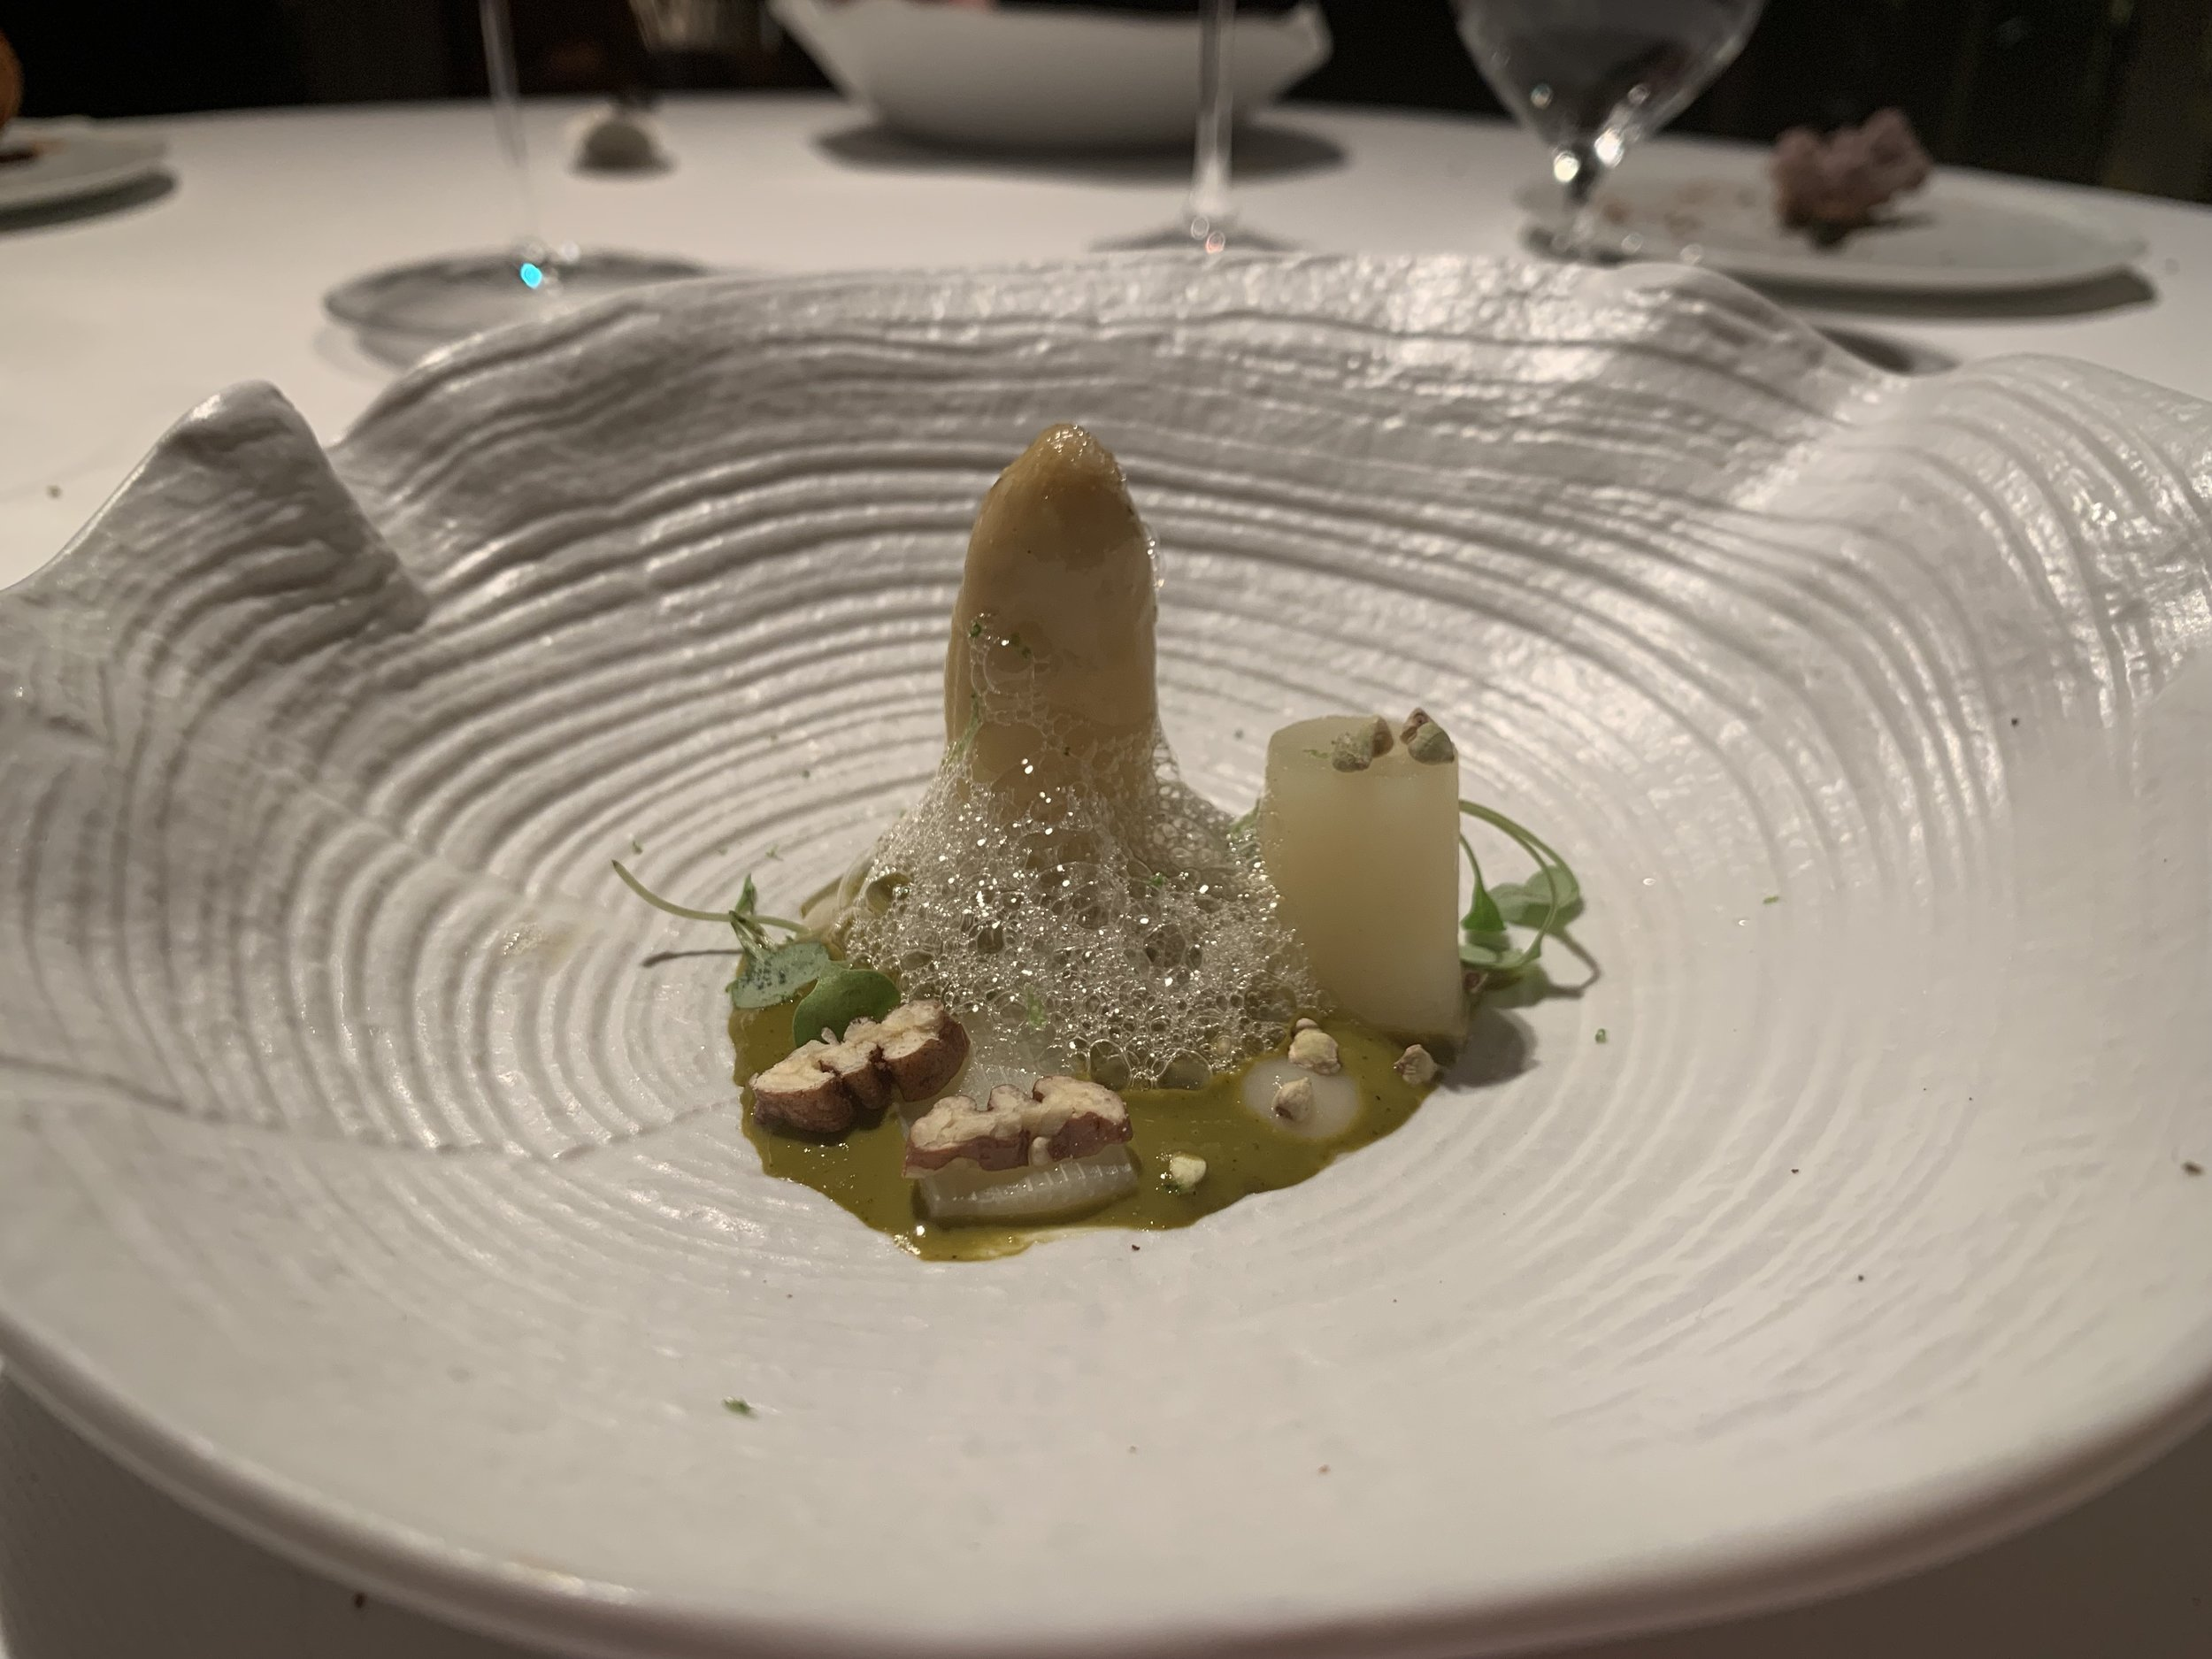 White asparagus with sea anemone - This is literally the most phallic dish we've ever seen. It's kind of distracting in a way, especially from this angle. It is fun to eat sea anemone though - that's something you don't see on a menu every day.